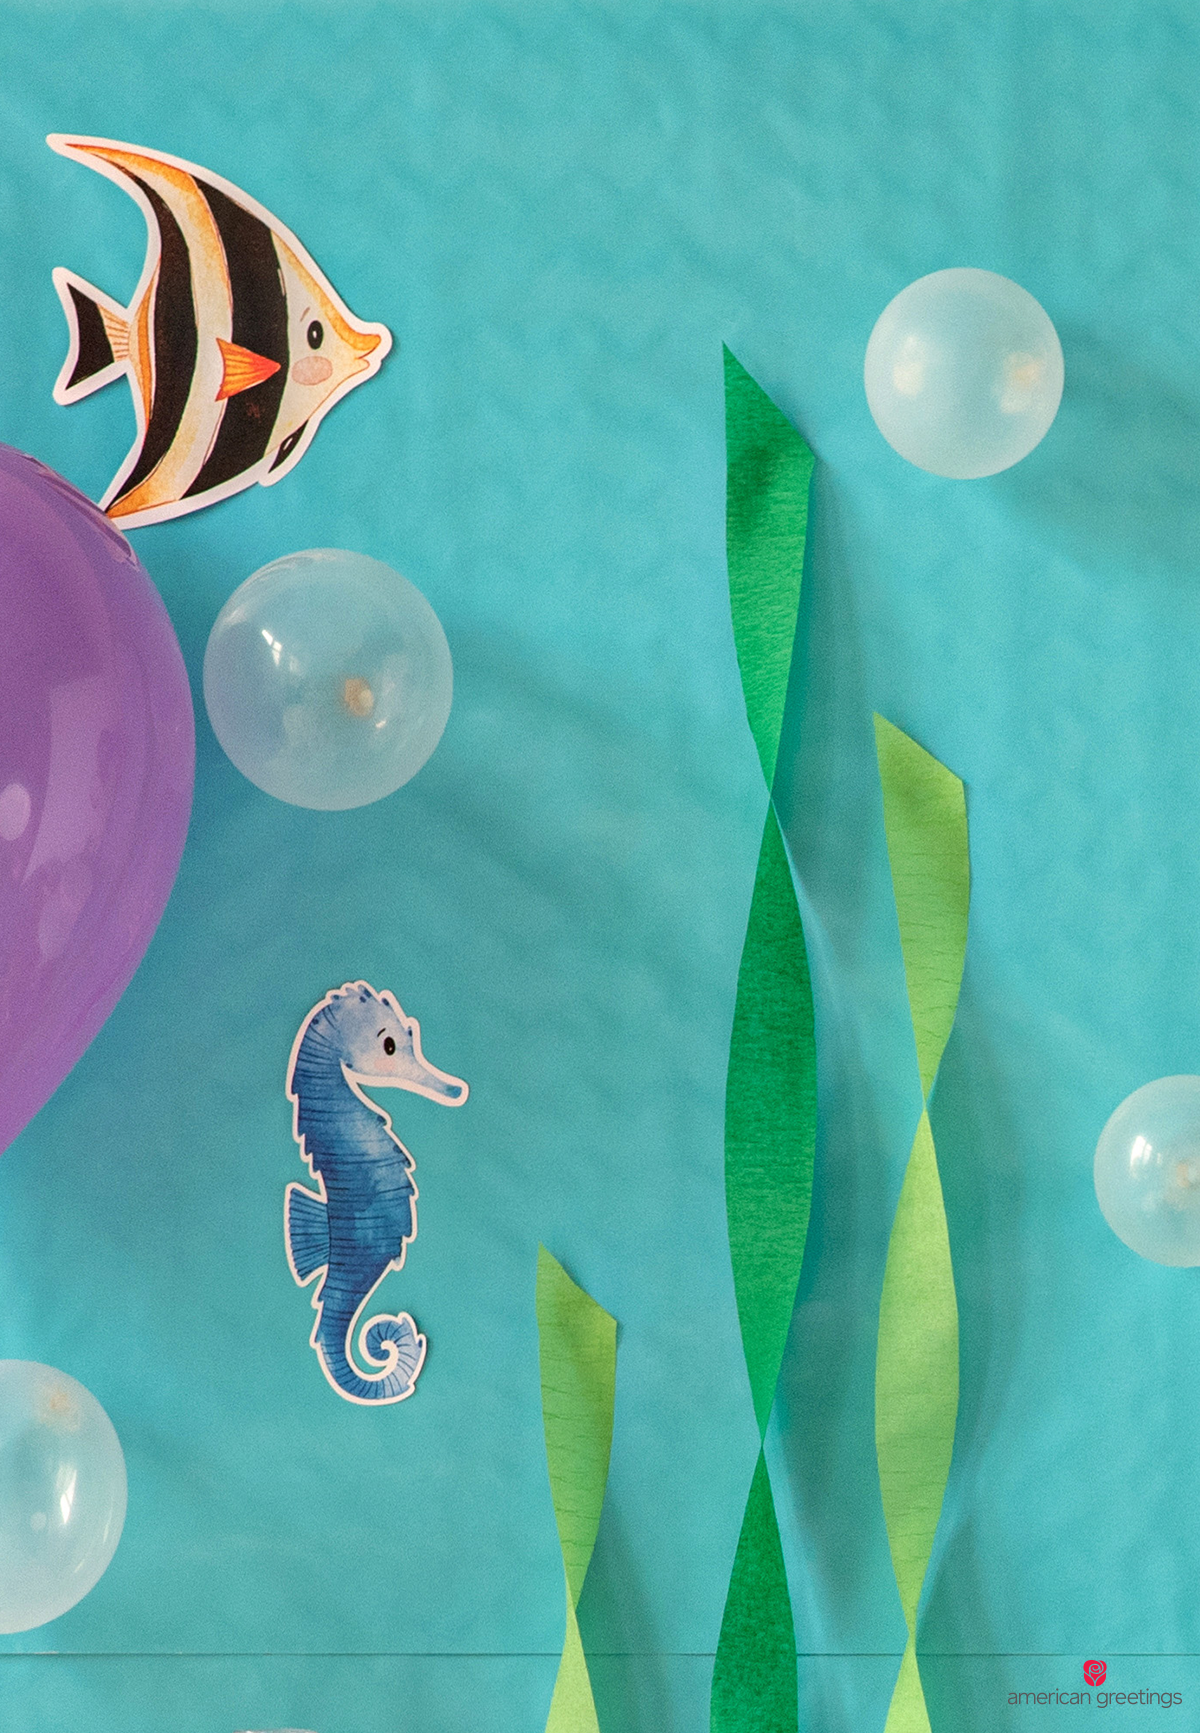 Aquatic scene created with reversible teal gift wrap, amd decorated with sea life printables, green crepe paper as sea weed, and small balloons asthe bubbles